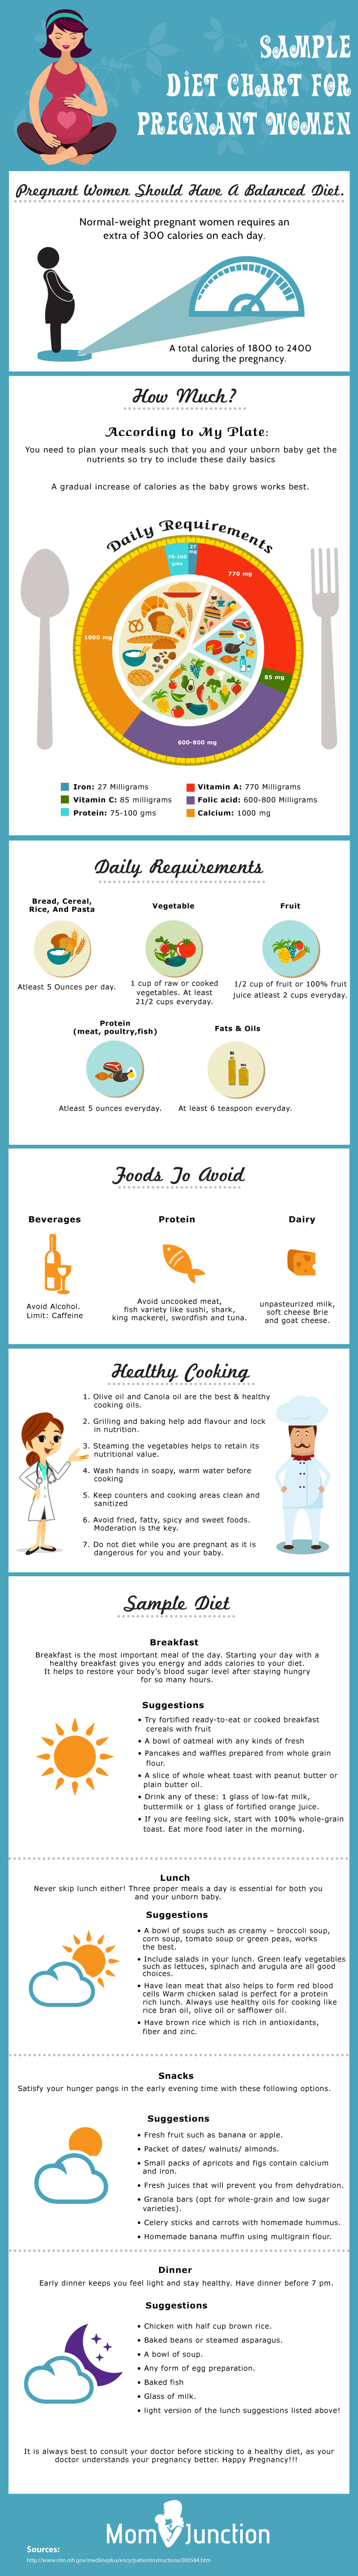 Sample Diet Chart For Pregnant Women